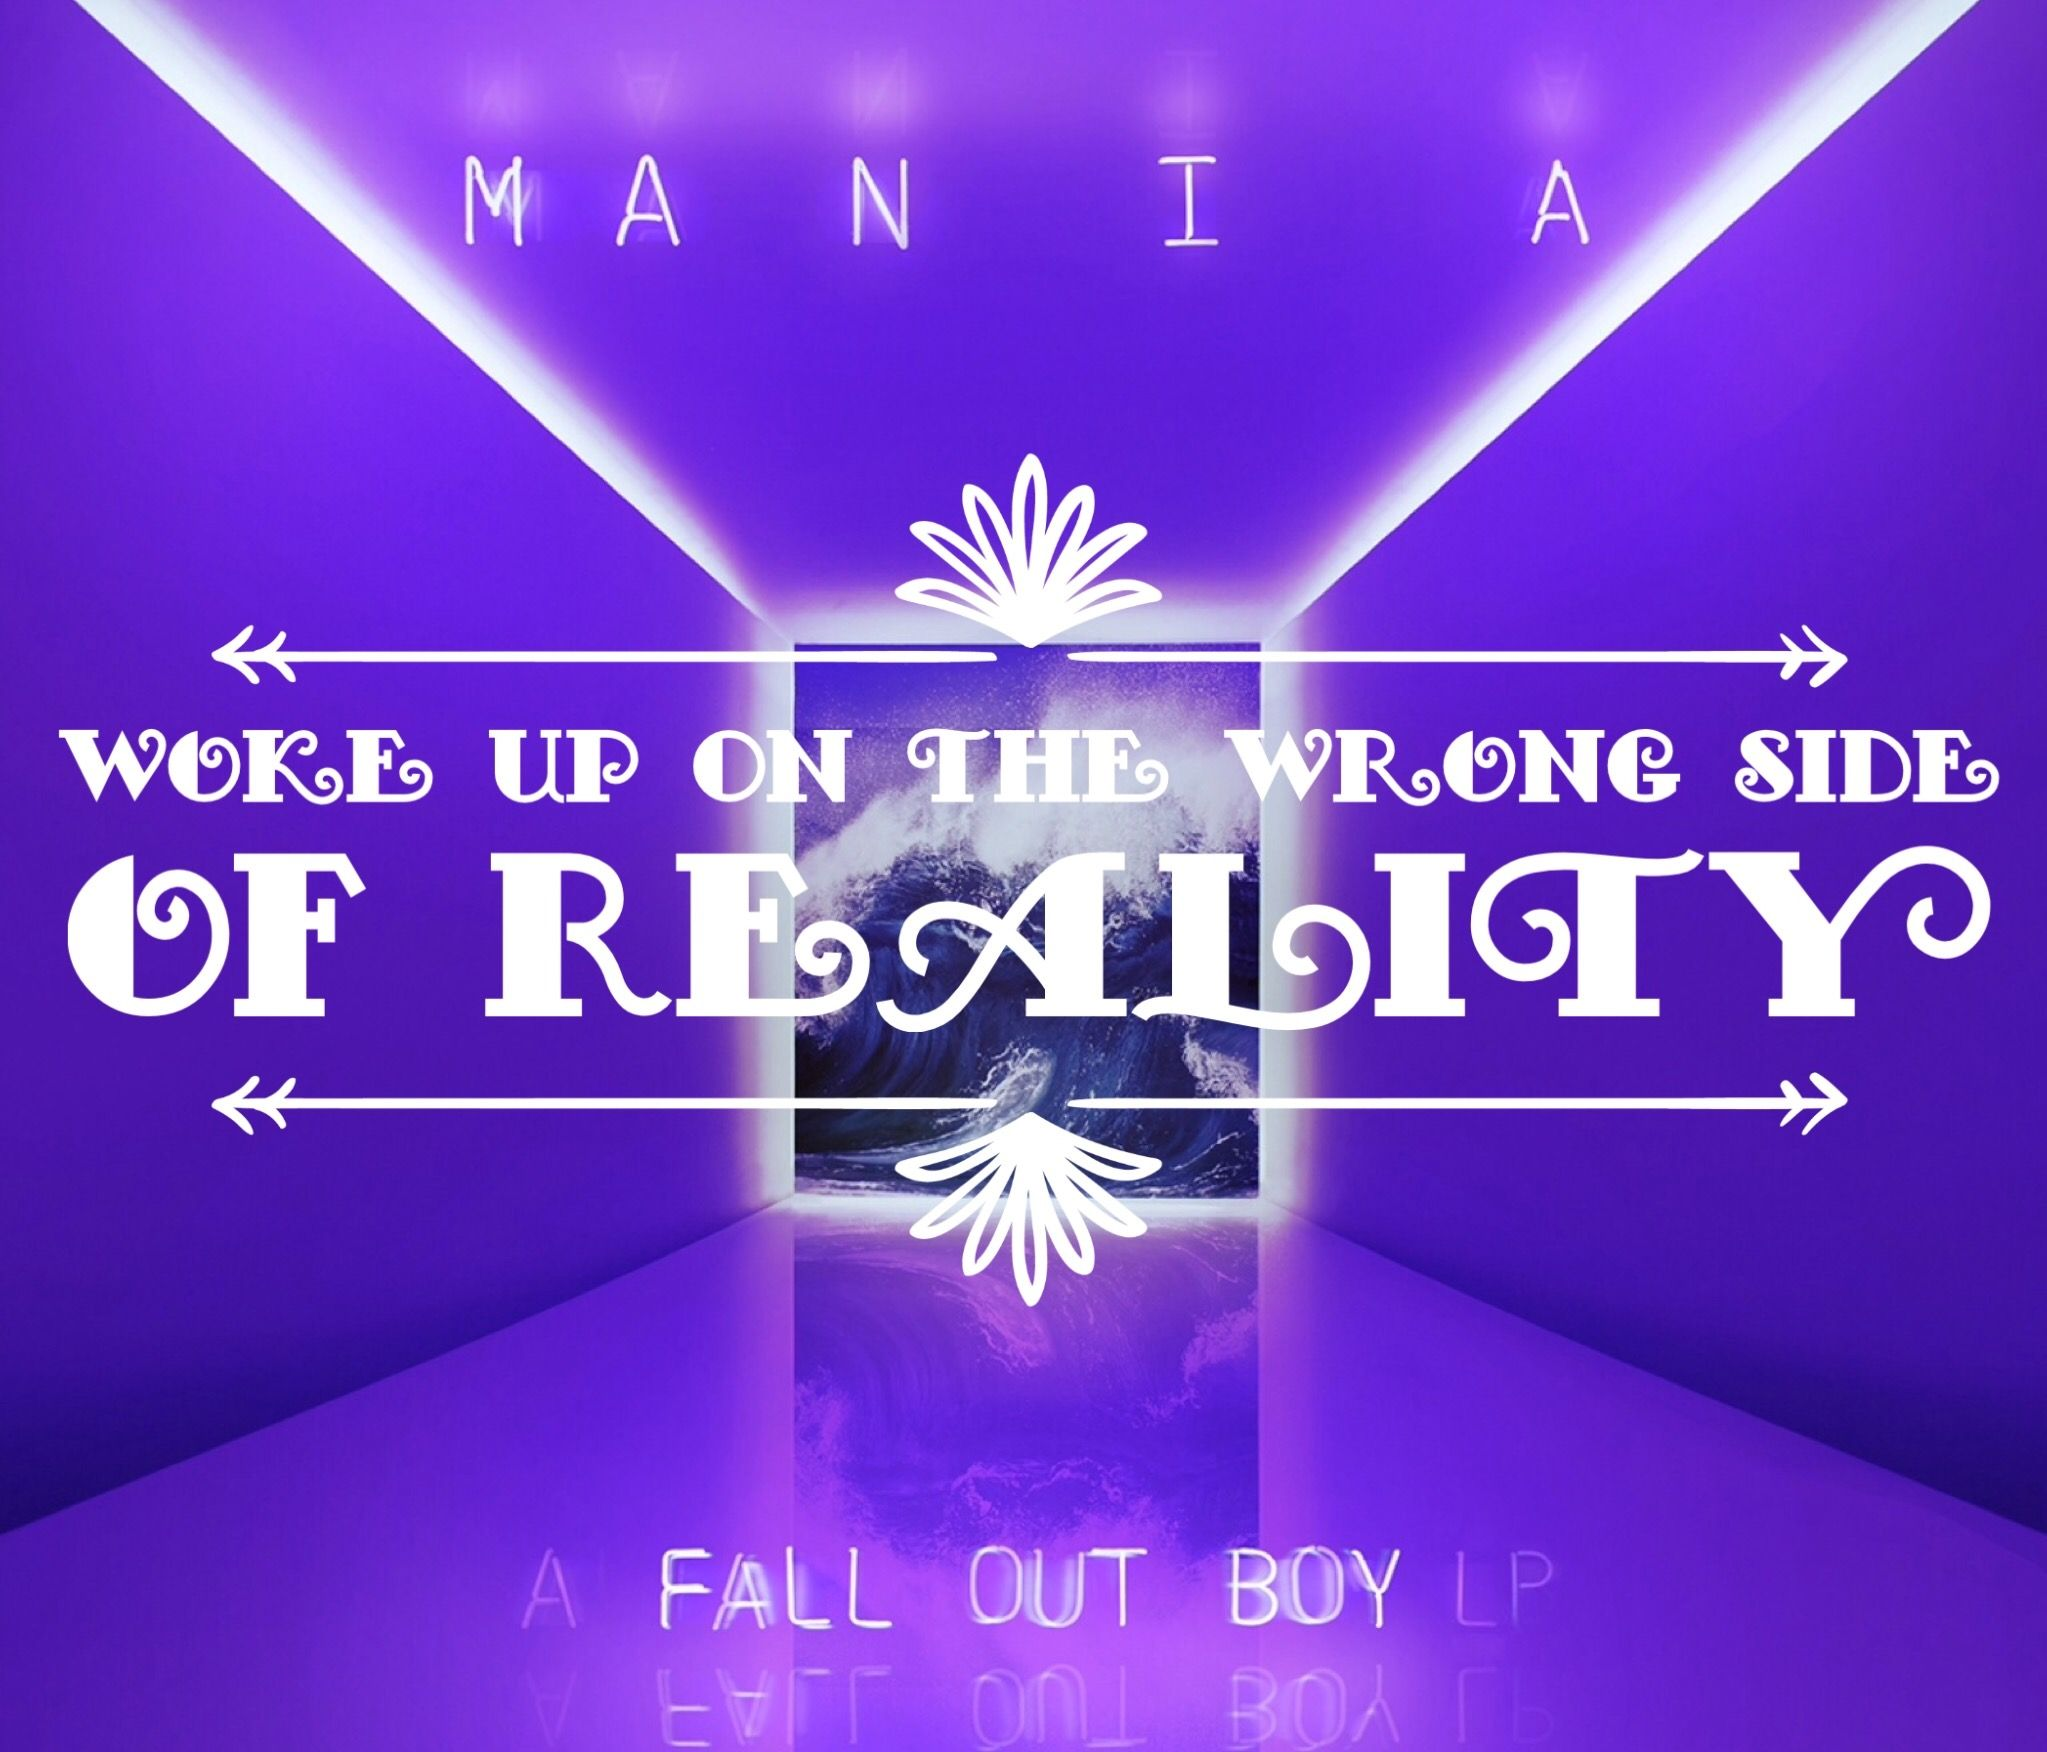 Fall Out Boy Mania Iphone Wallpaper Fall Out Boy Wallpaper Mania Wallpapersharee Com